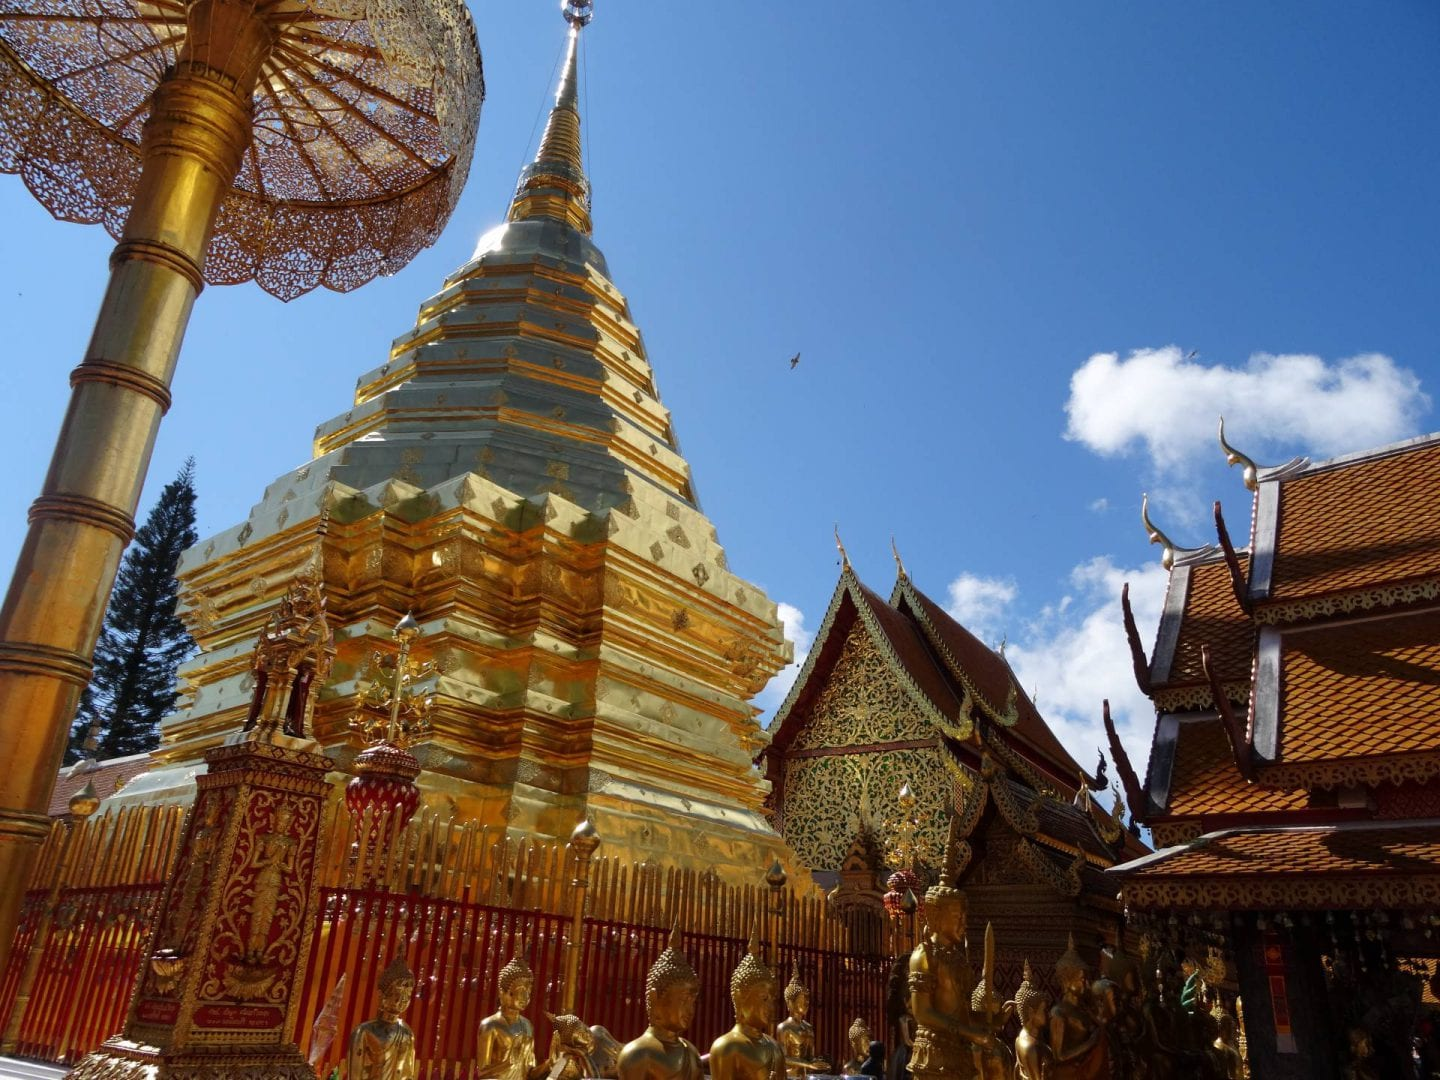 Top tips for a visit to Chiang Mai